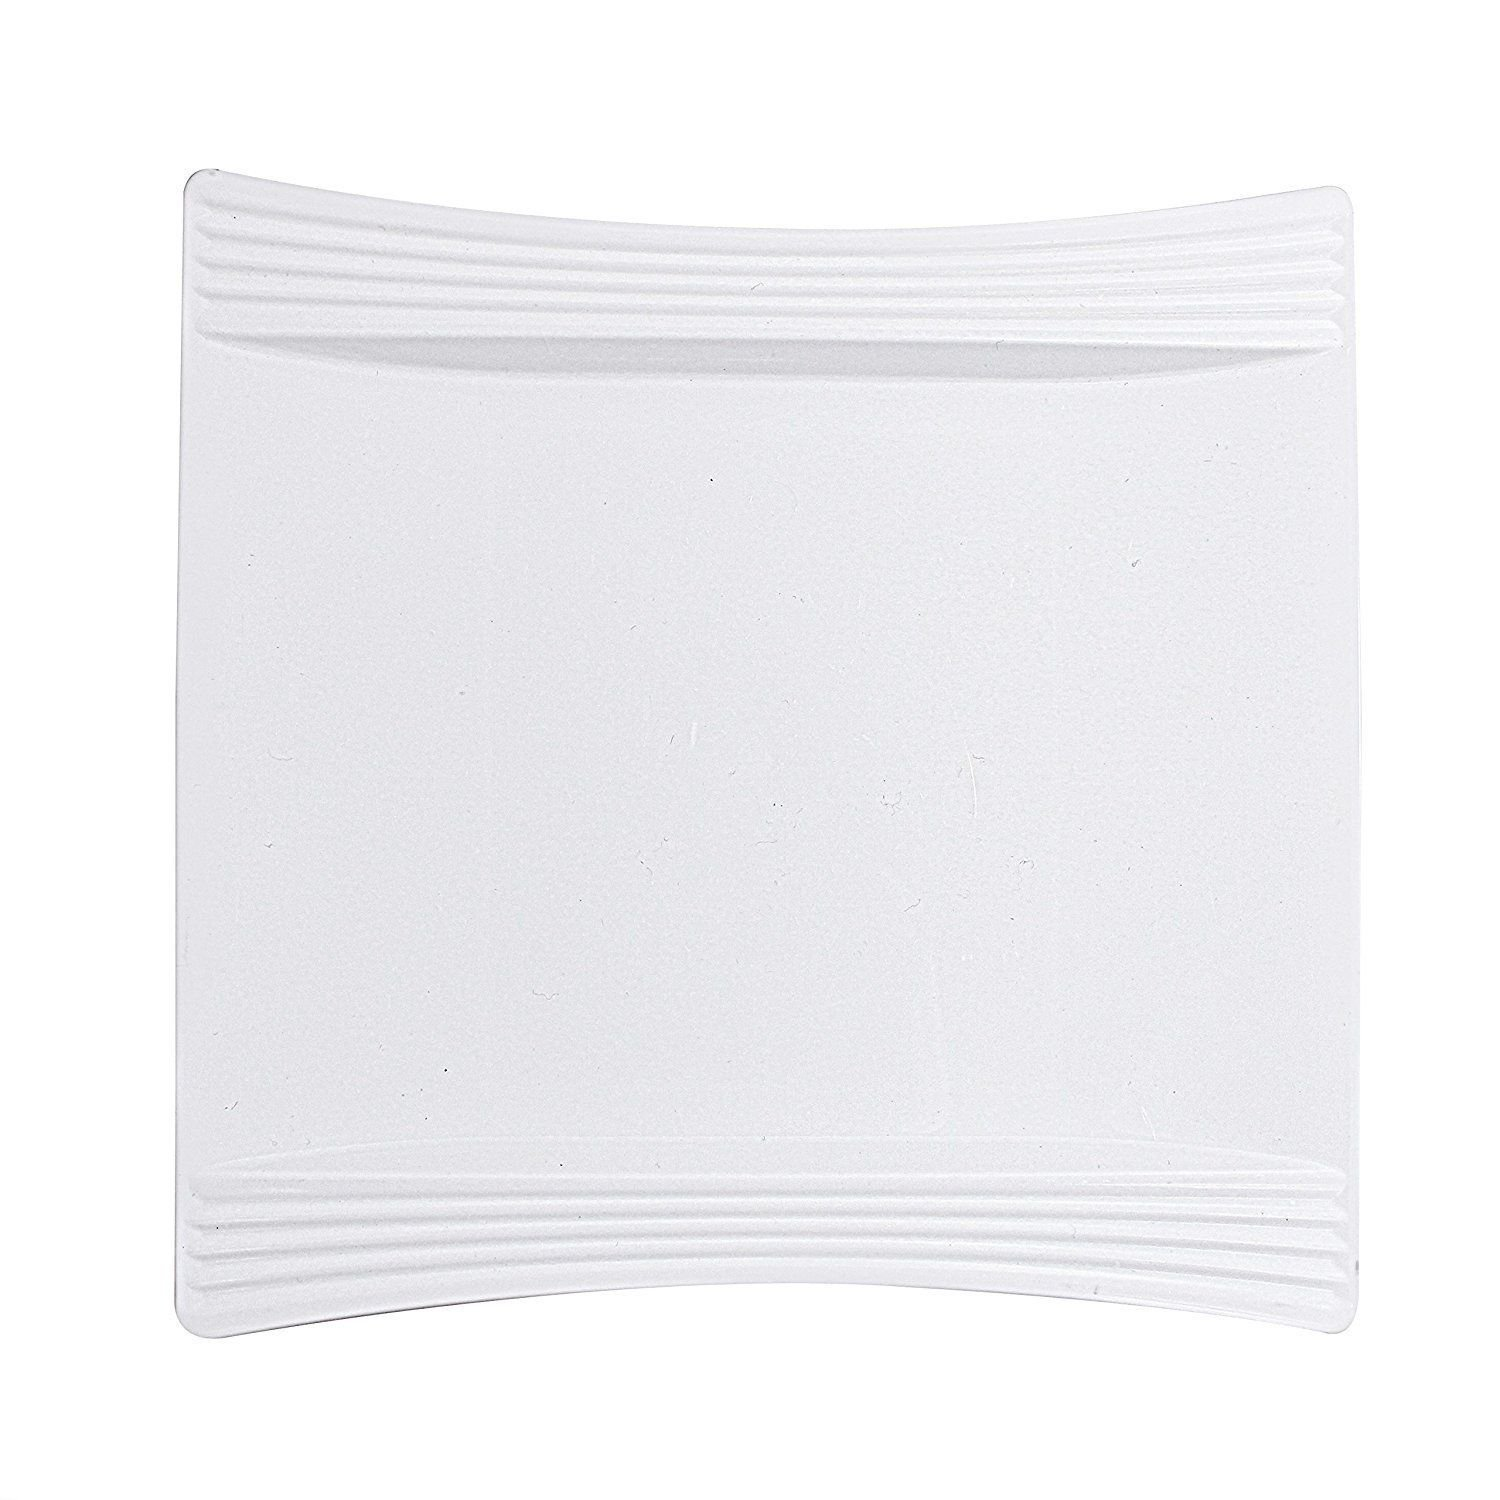 Party-Bargains-Hotel-Ware-Square-Plates-Collection-Sturdy-  sc 1 st  eBay & Party Bargains Hotel Ware Square Plates Collection Sturdy Plastic ...